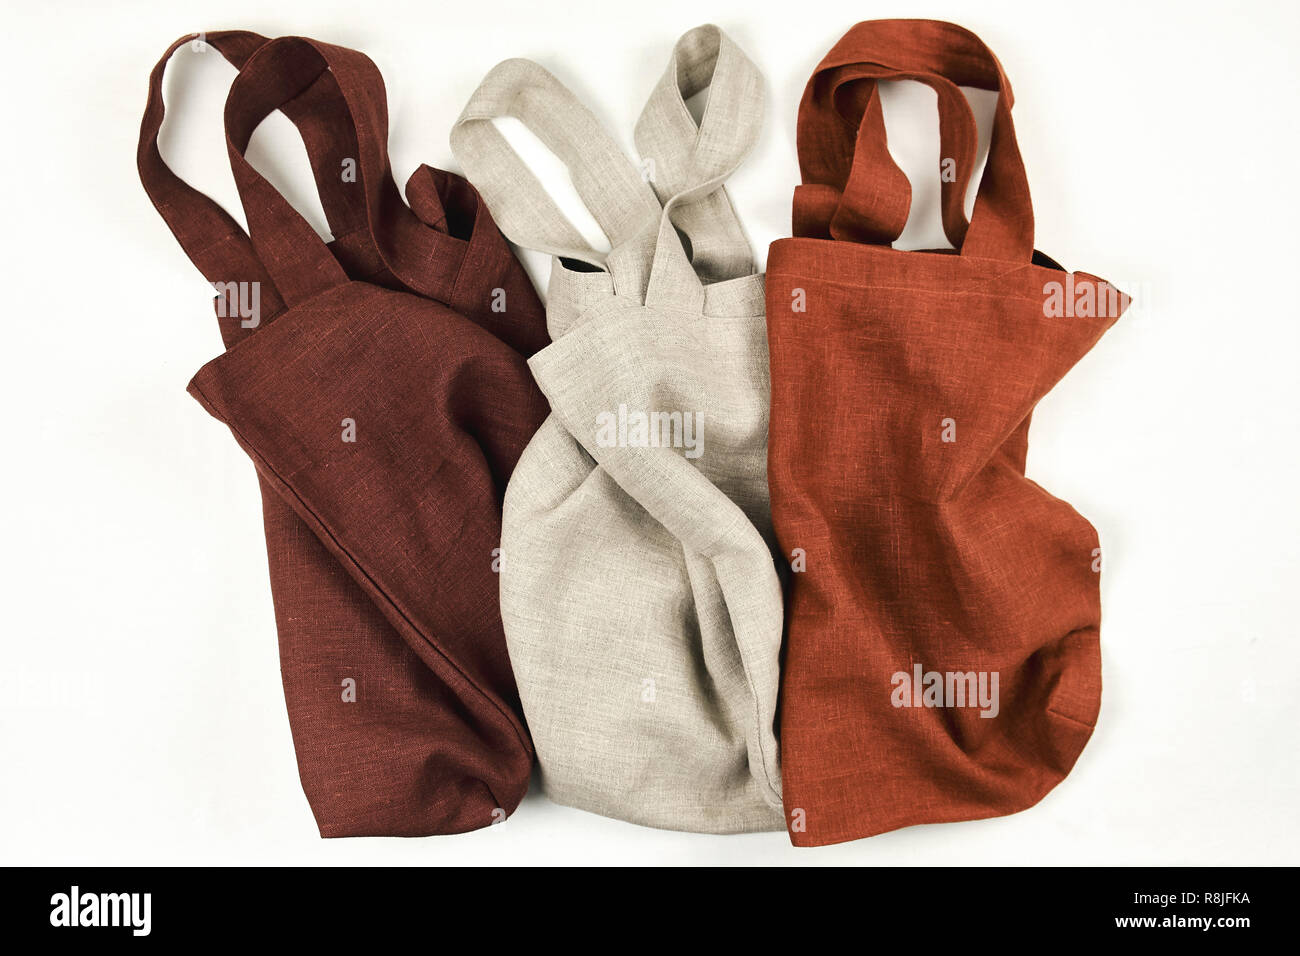 Eco Linen or Cotton Bag Various Color Collection. Organic Zero Waste Package for Keeping Vegetables Fresh and Healthy at Home. Blank Reusable Natural  - Stock Image